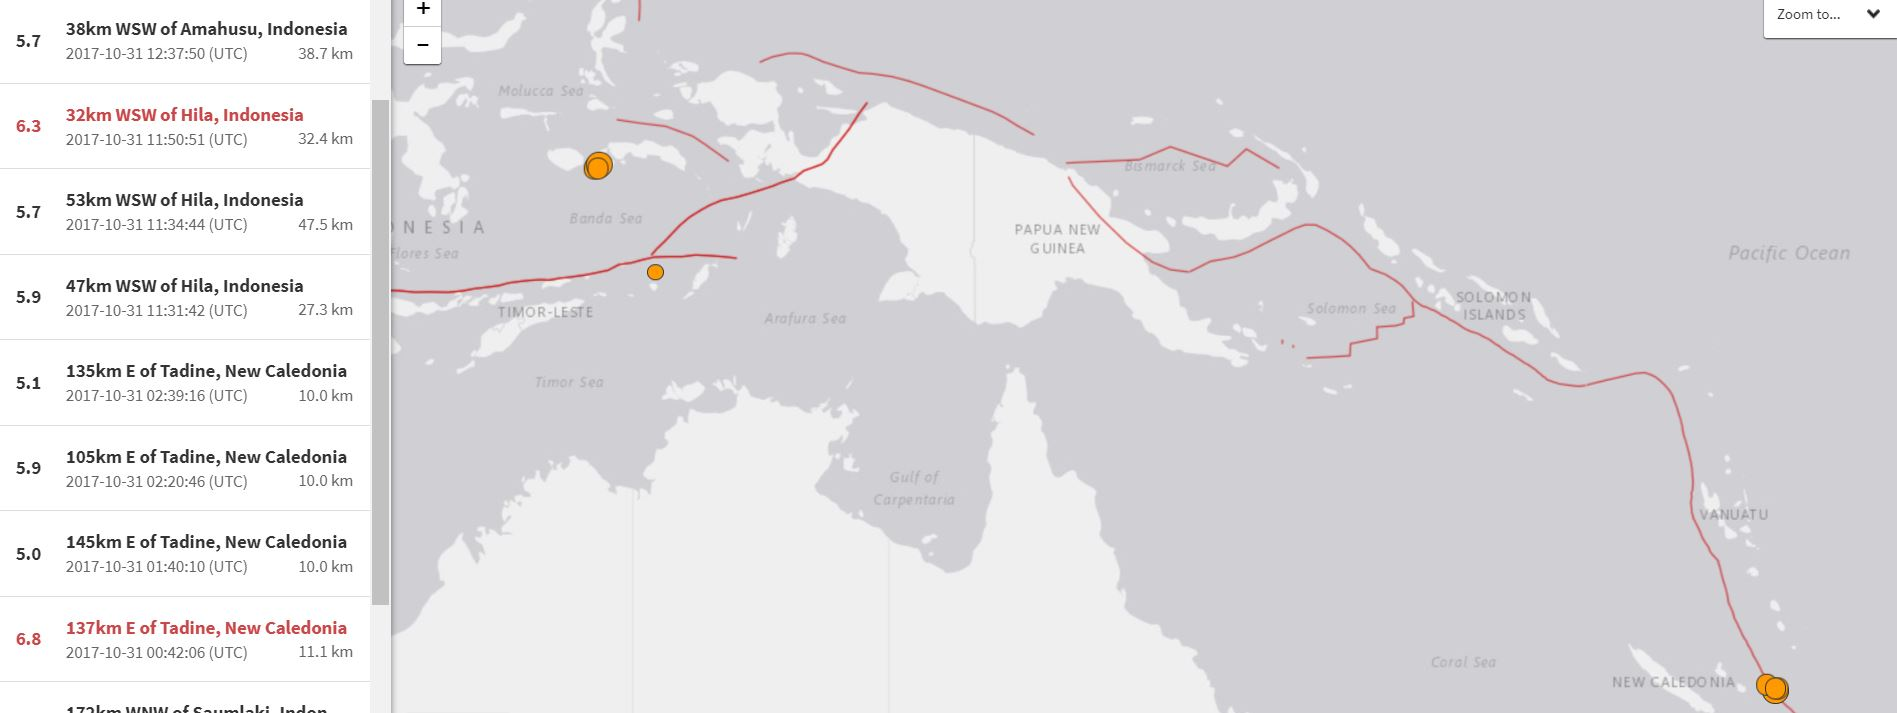 Strong earthquakes on October 31 2017